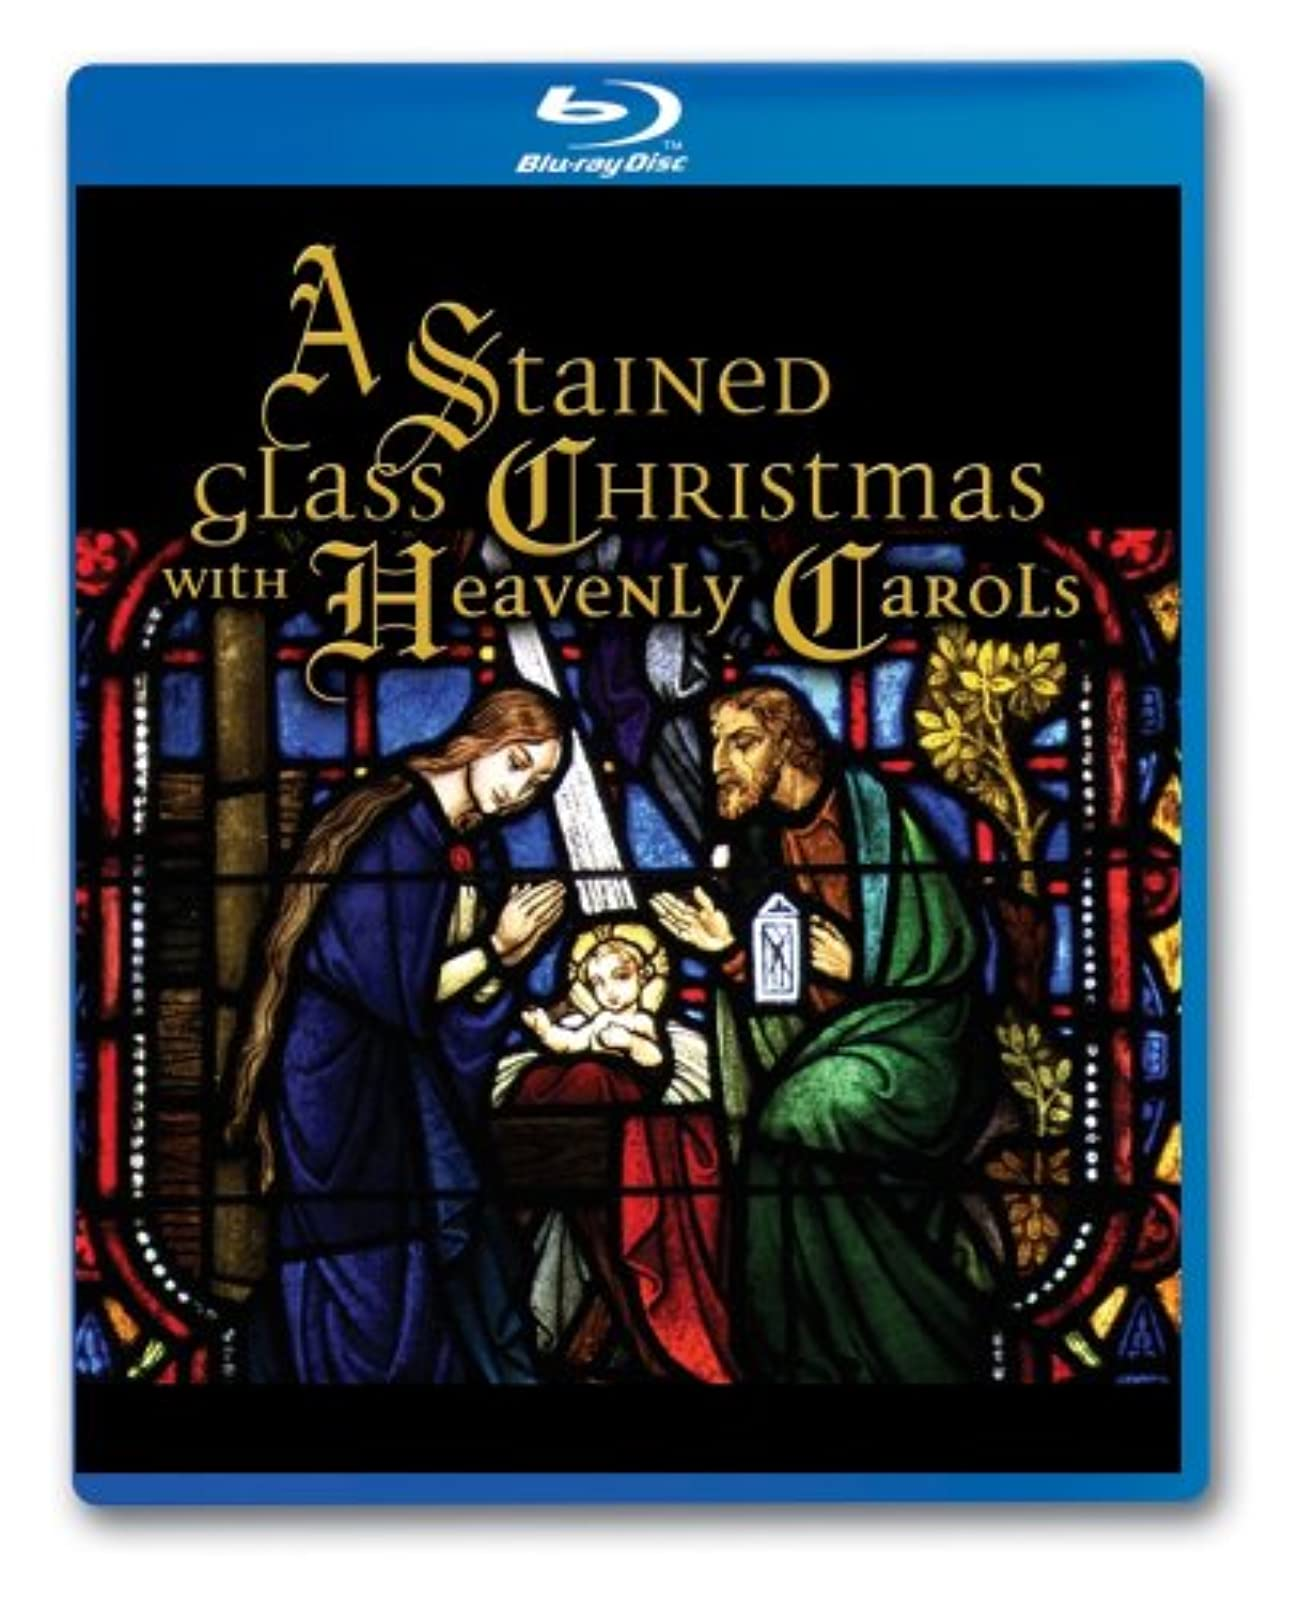 A Stained Glass Christmas With Heavenly Carols Blu-Ray